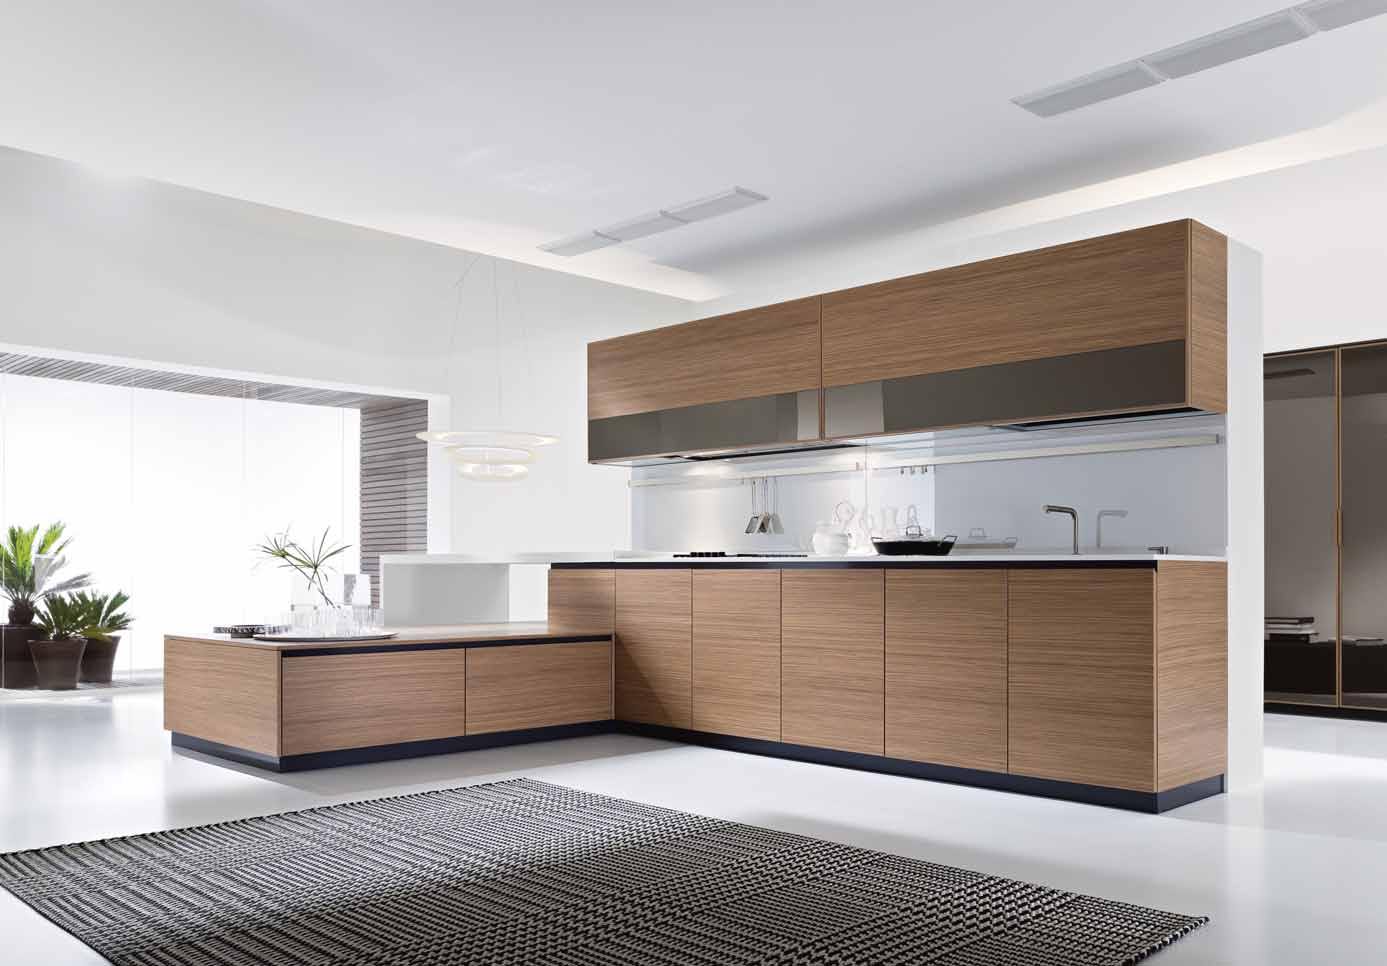 Outstanding Modular Kitchen Designs 1387 x 966 · 85 kB · jpeg